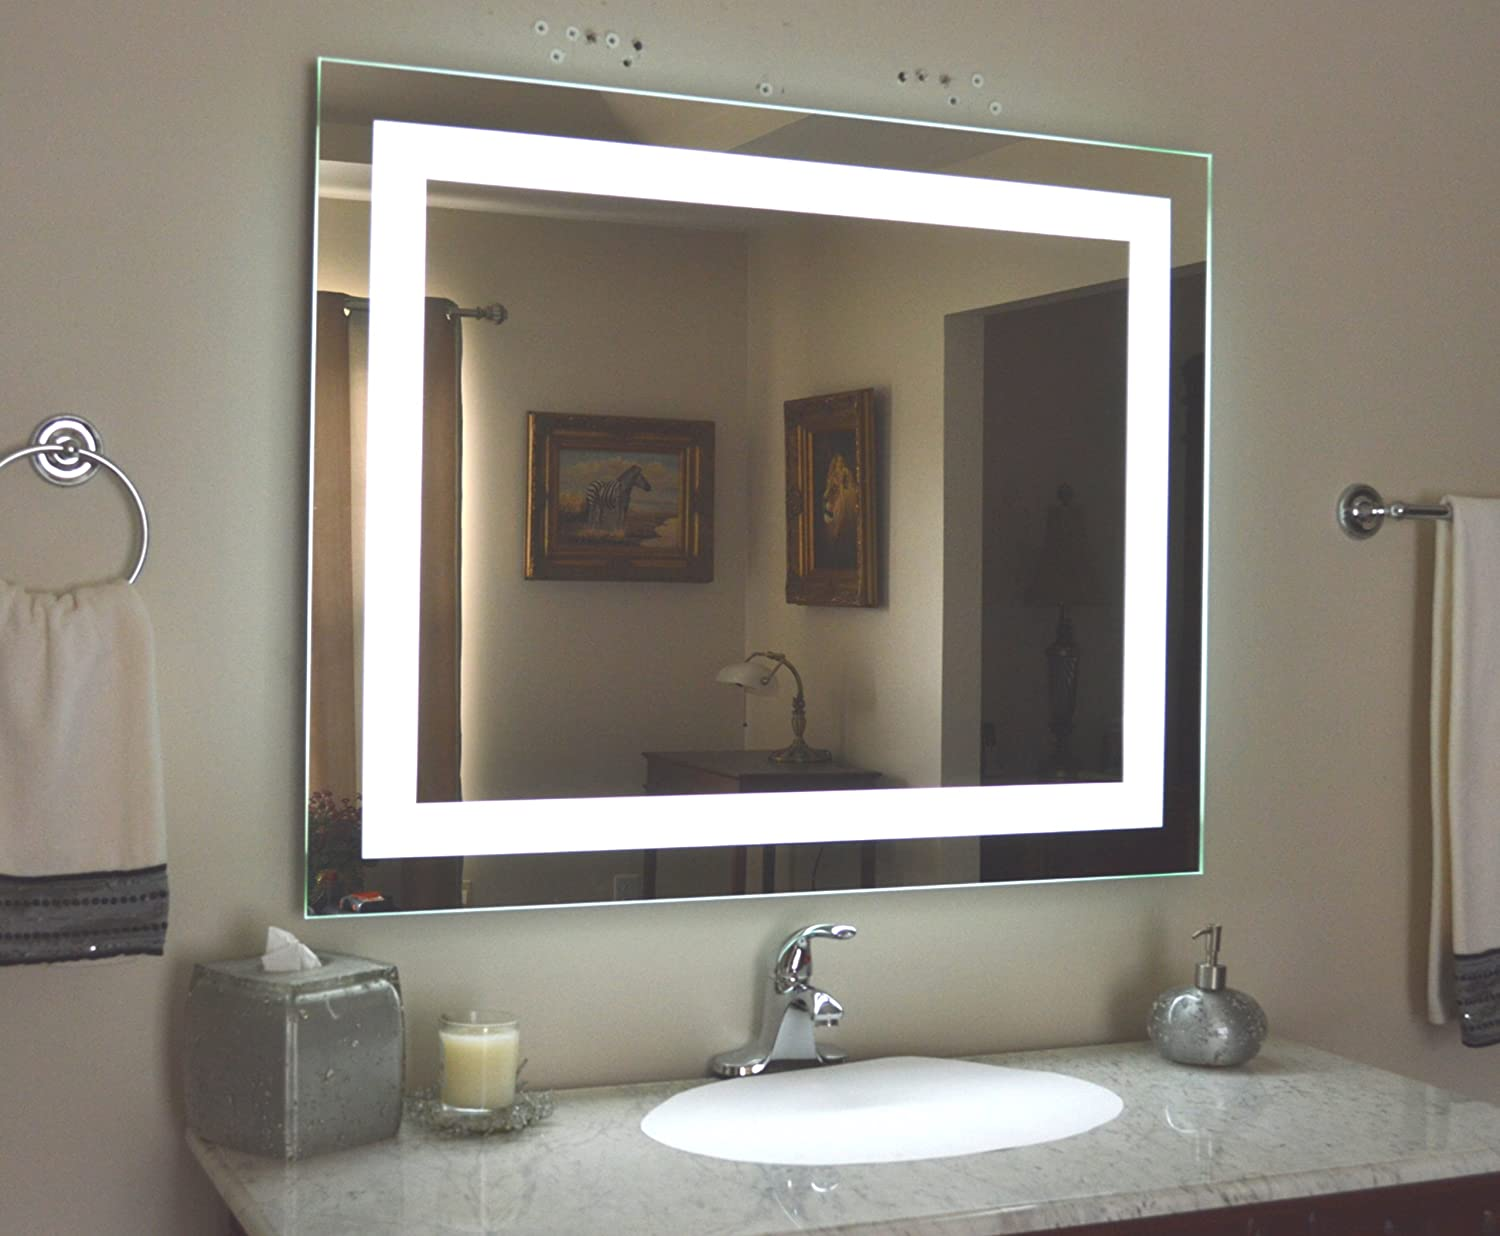 Amazon wall mounted lighted vanity mirror led mam84032 amazon wall mounted lighted vanity mirror led mam84032 commercial grade 40 home kitchen aloadofball Gallery